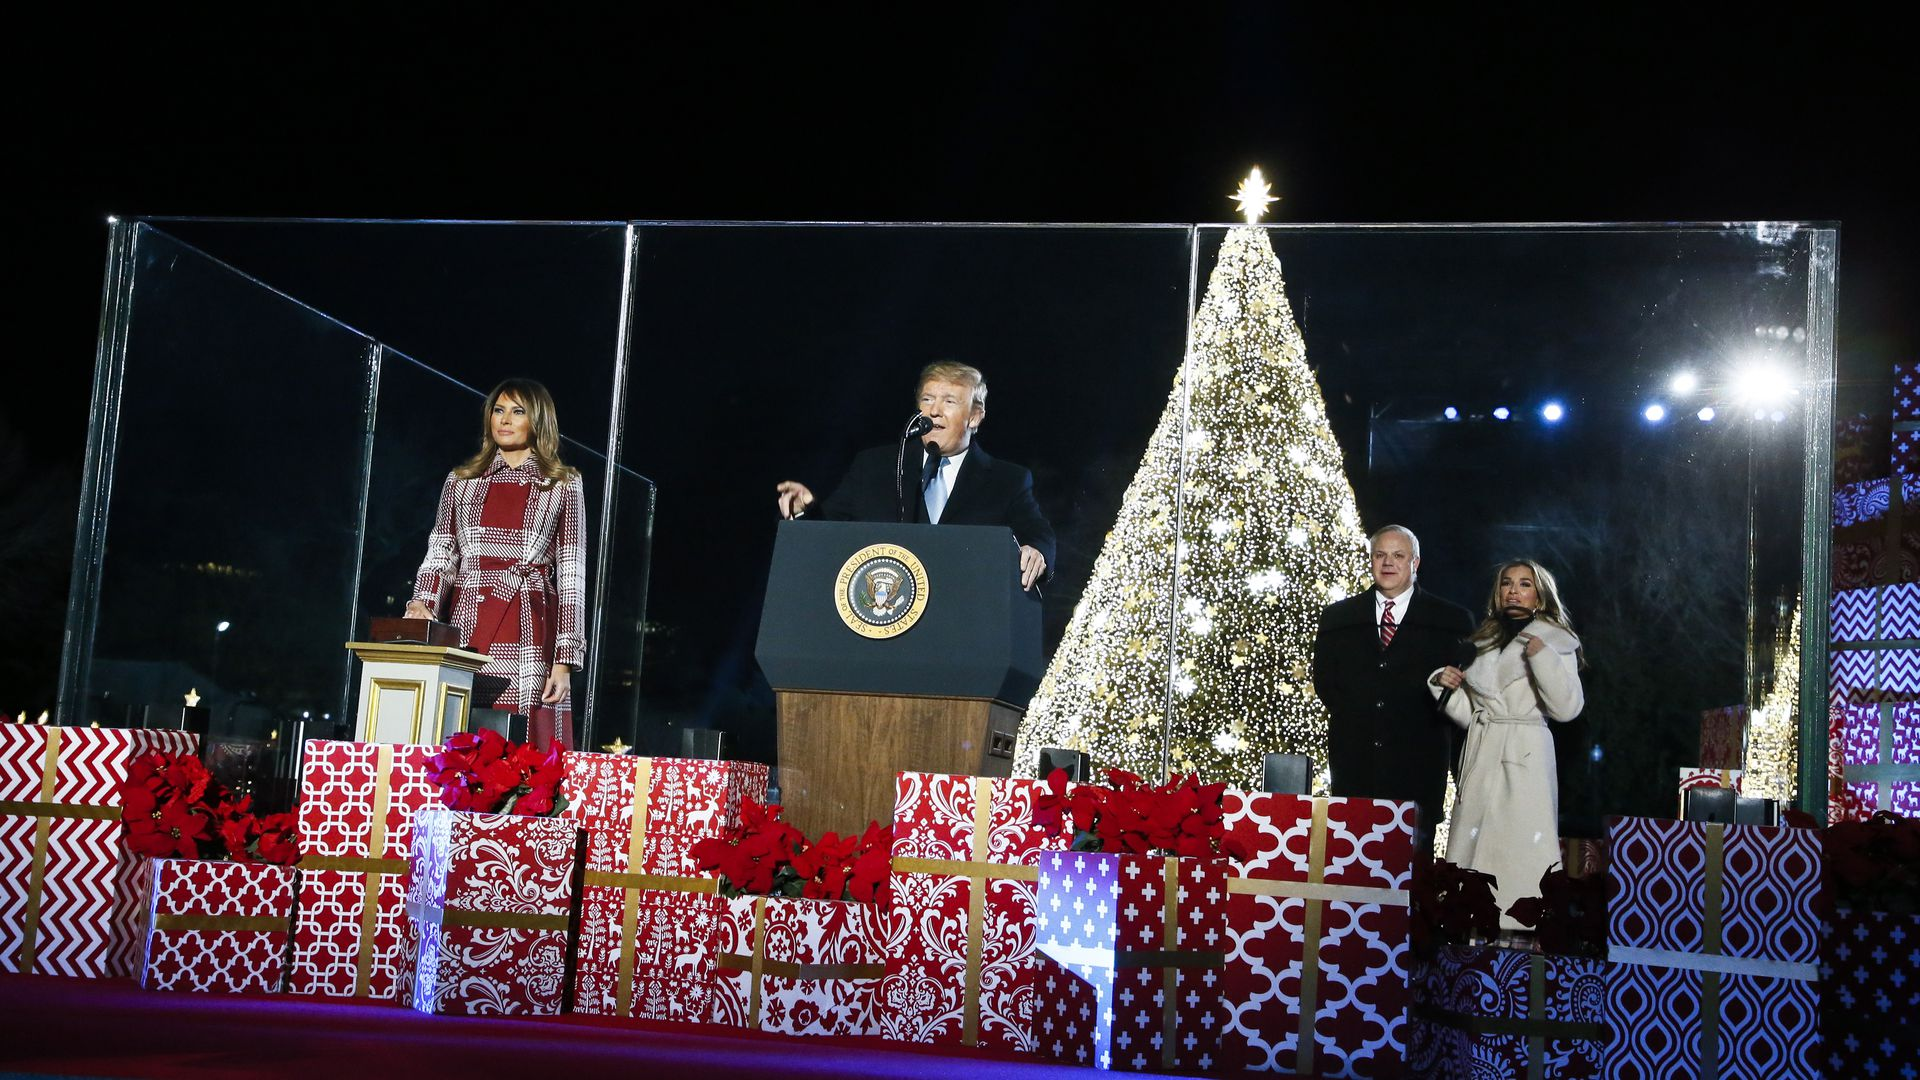 Trump at Christmas ceremony